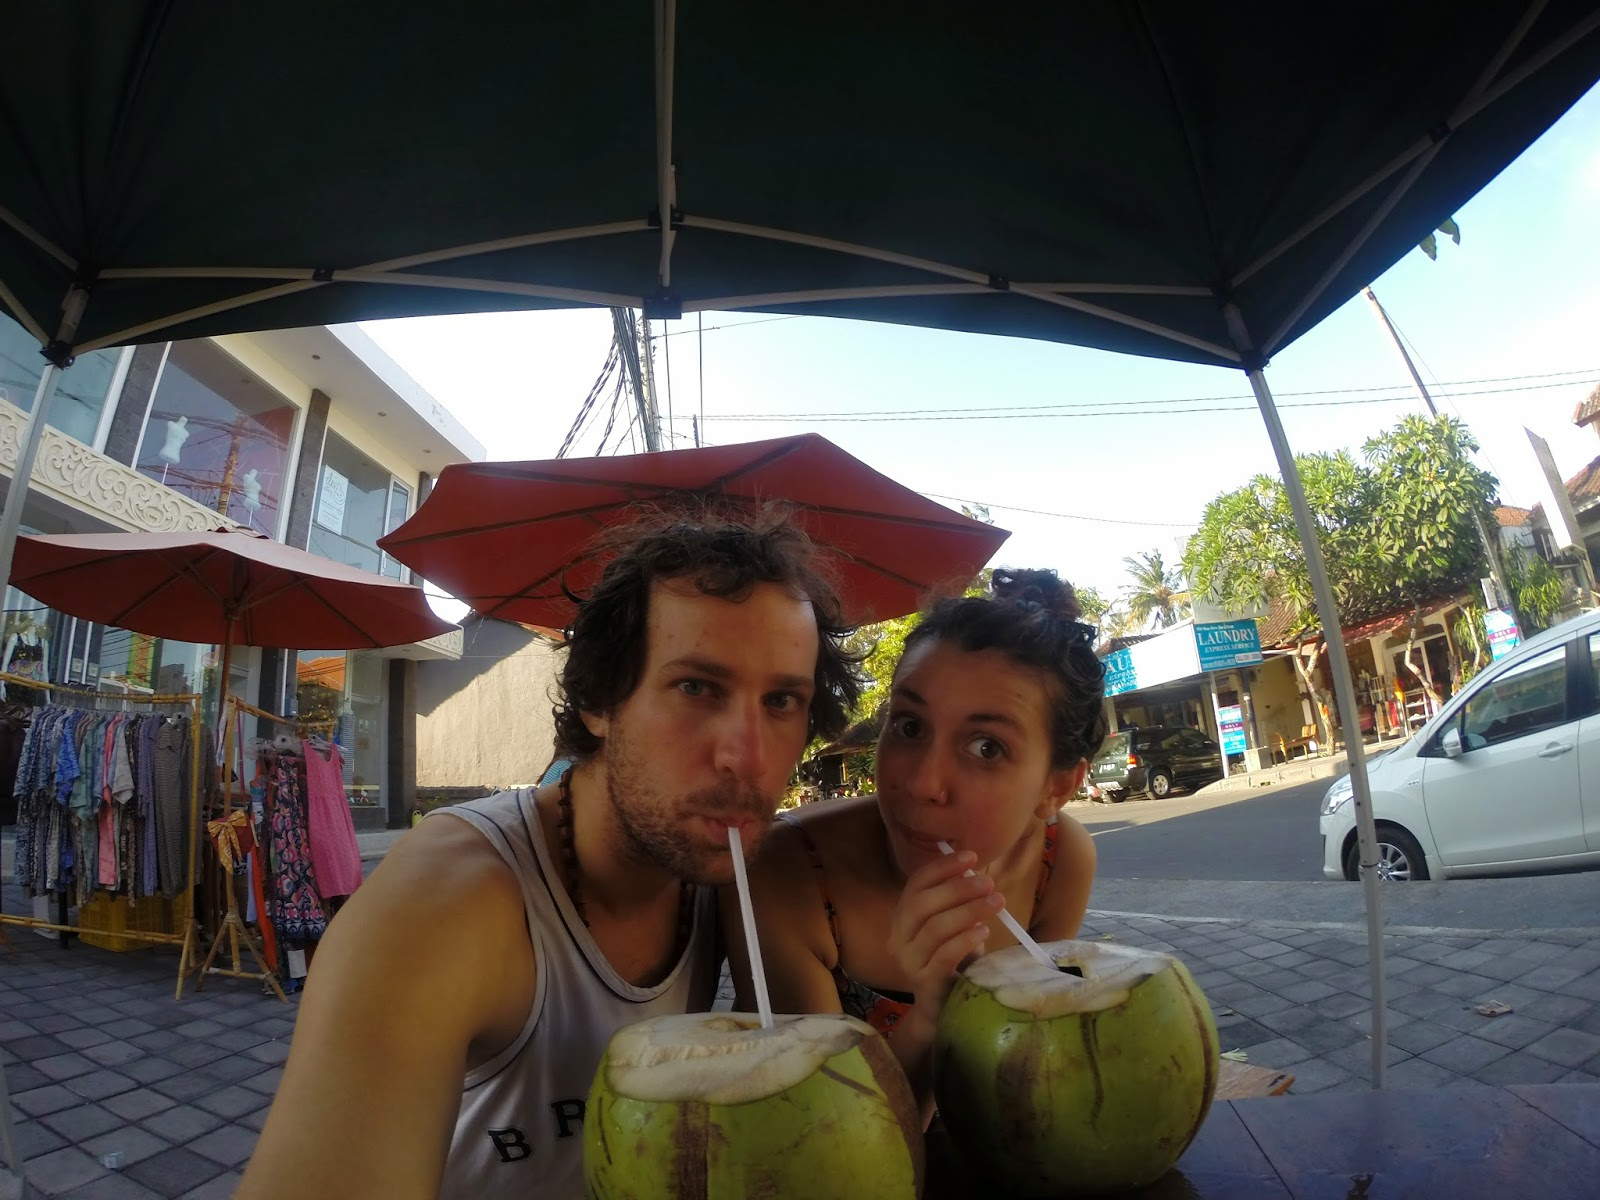 what a tasty couple o coconuts